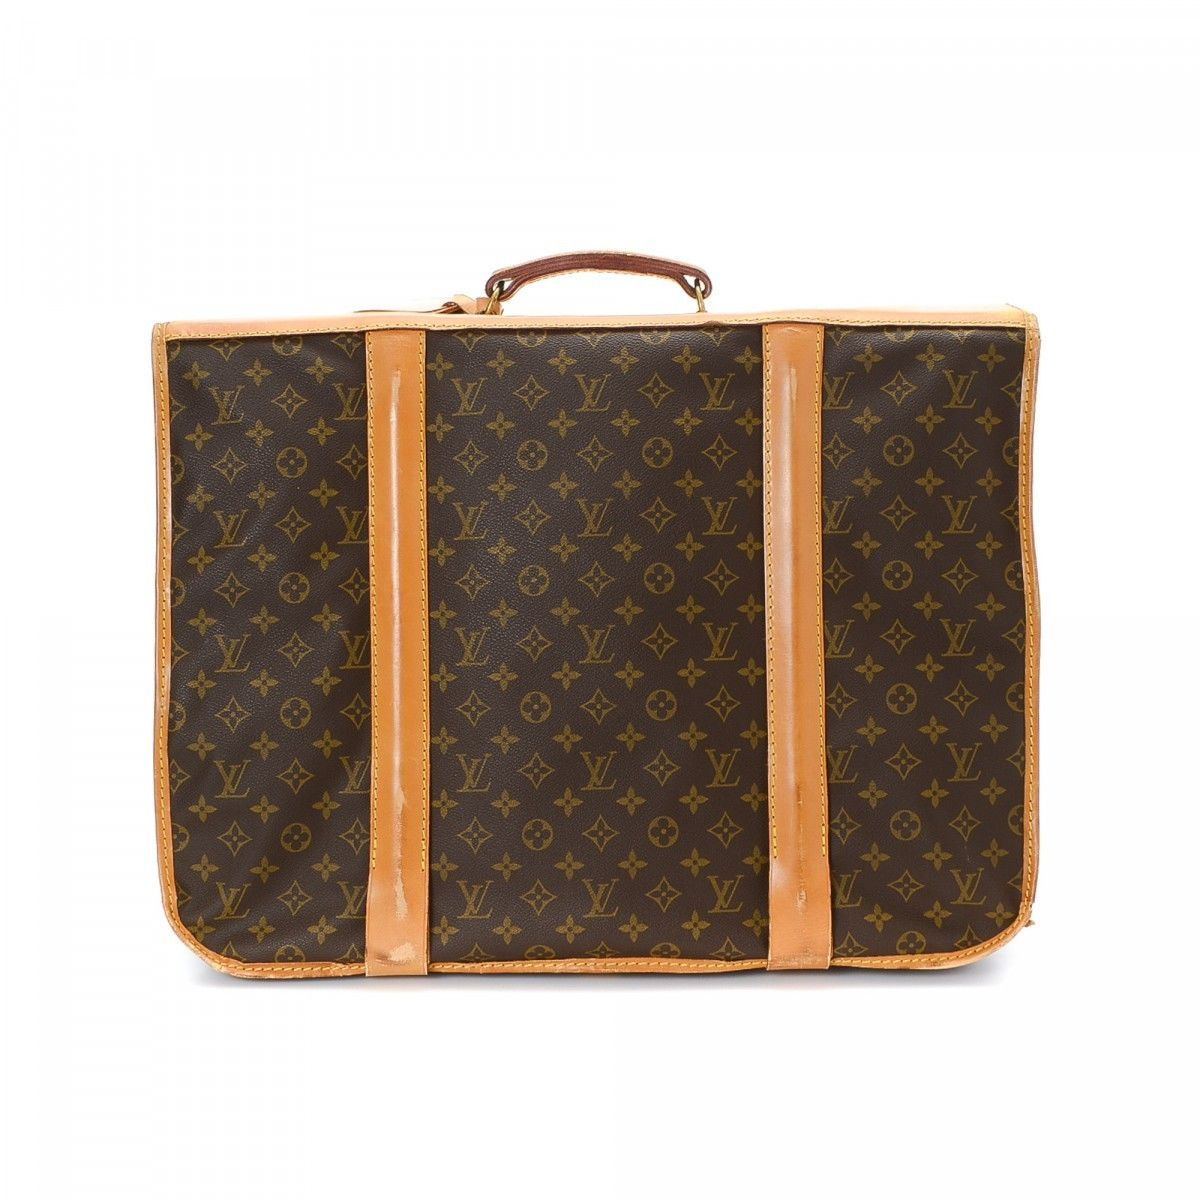 Louis Vuitton 5 Hangers Garment Bag Monogram Coated Canvas ... a638424b85c5c